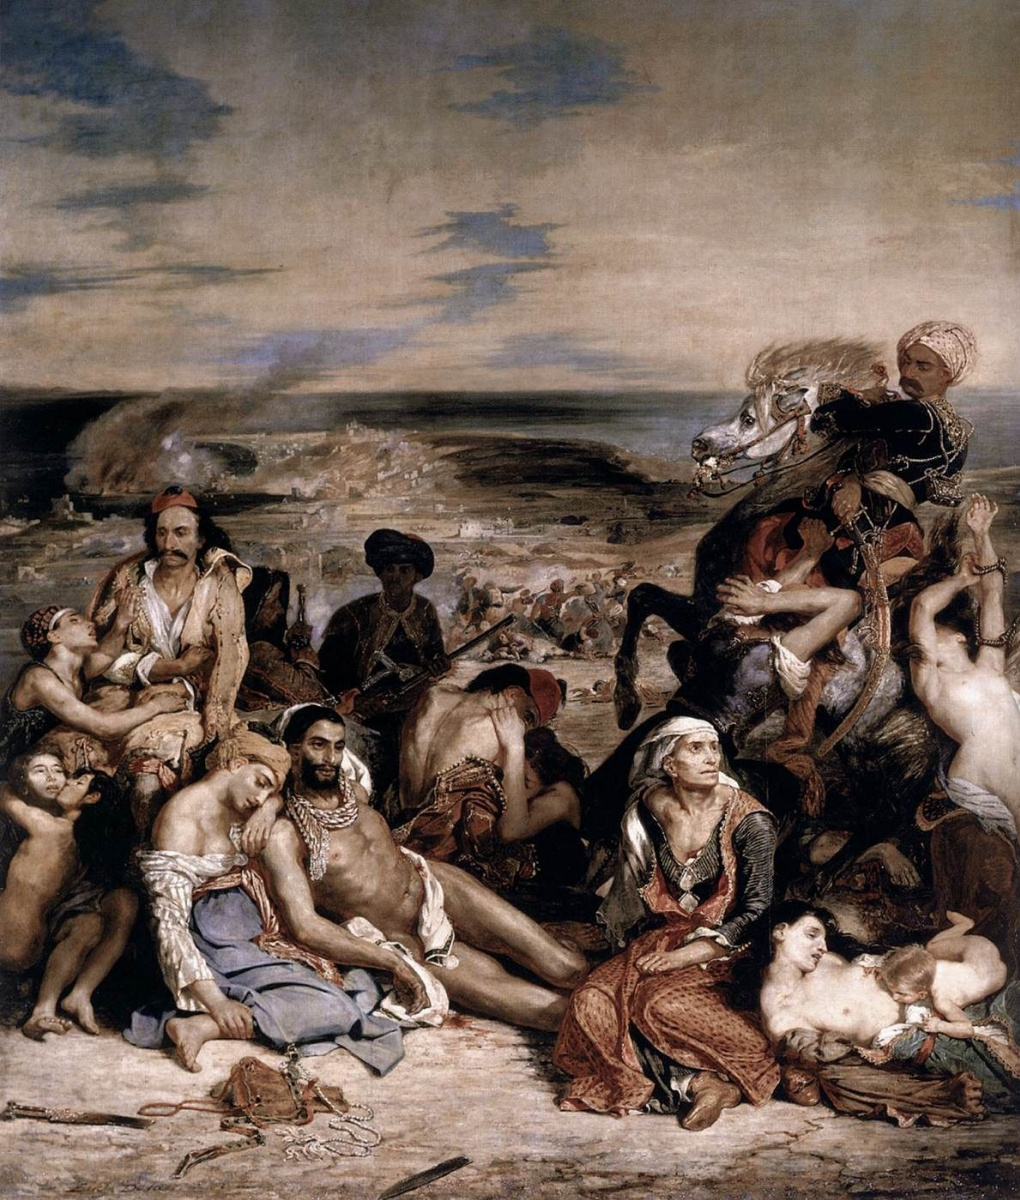 Eugene Delacroix. The massacre at Chios